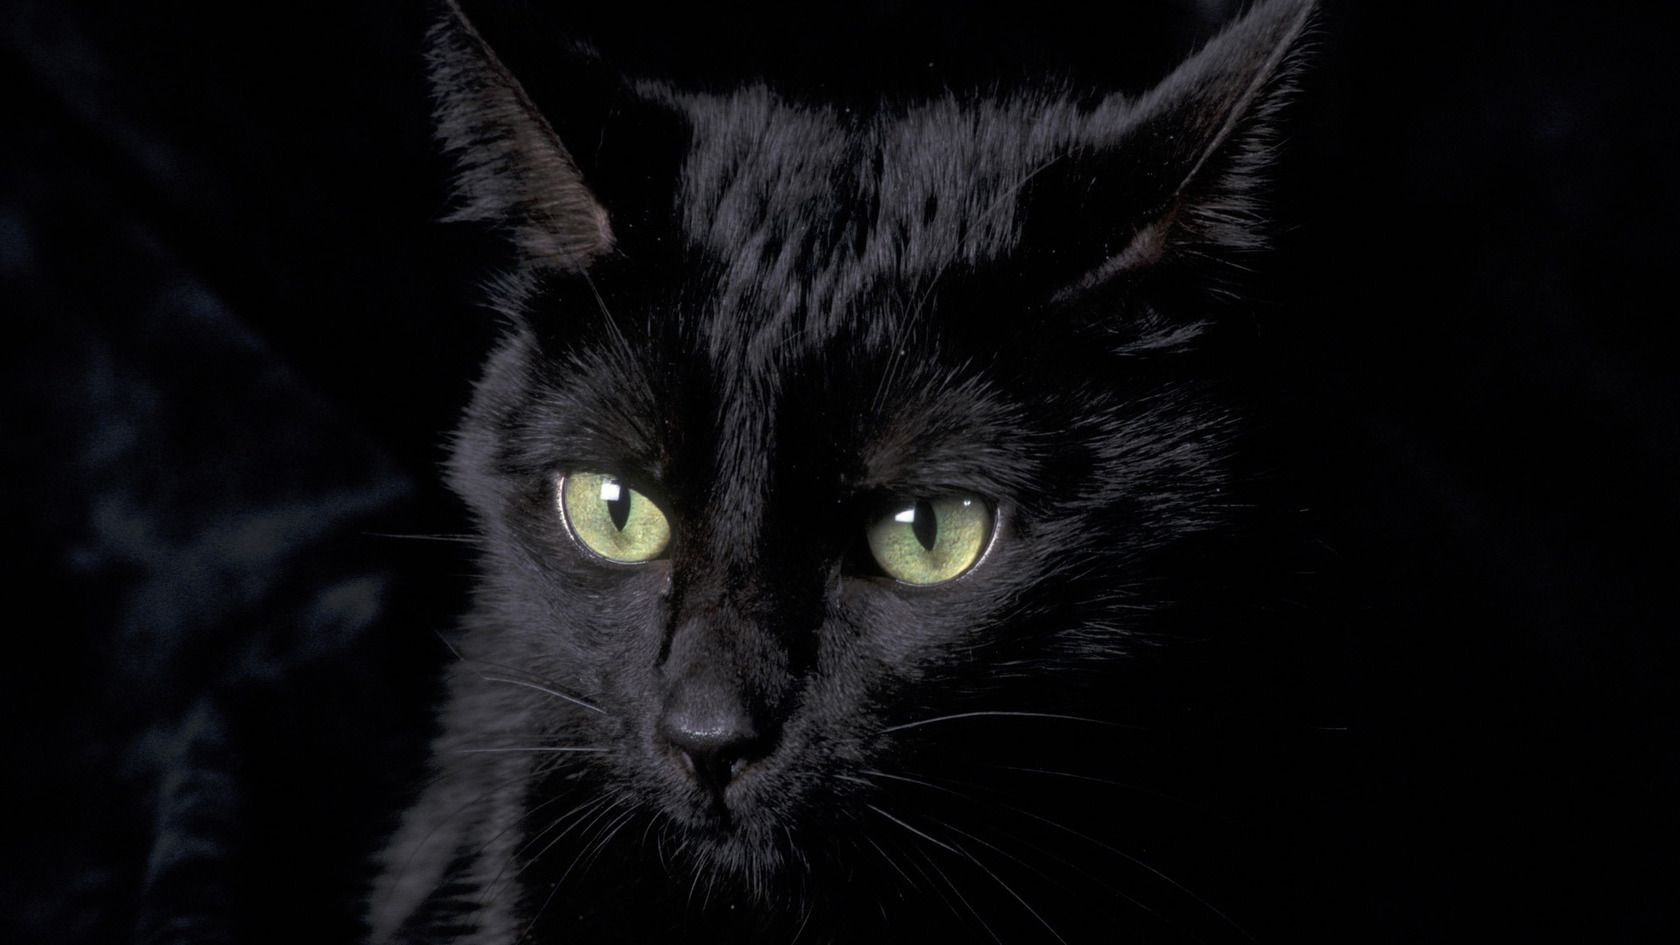 Black Cat Wallpaper Hd Images 1106 Wallpaper Animaljetz Com Afbeeldingen